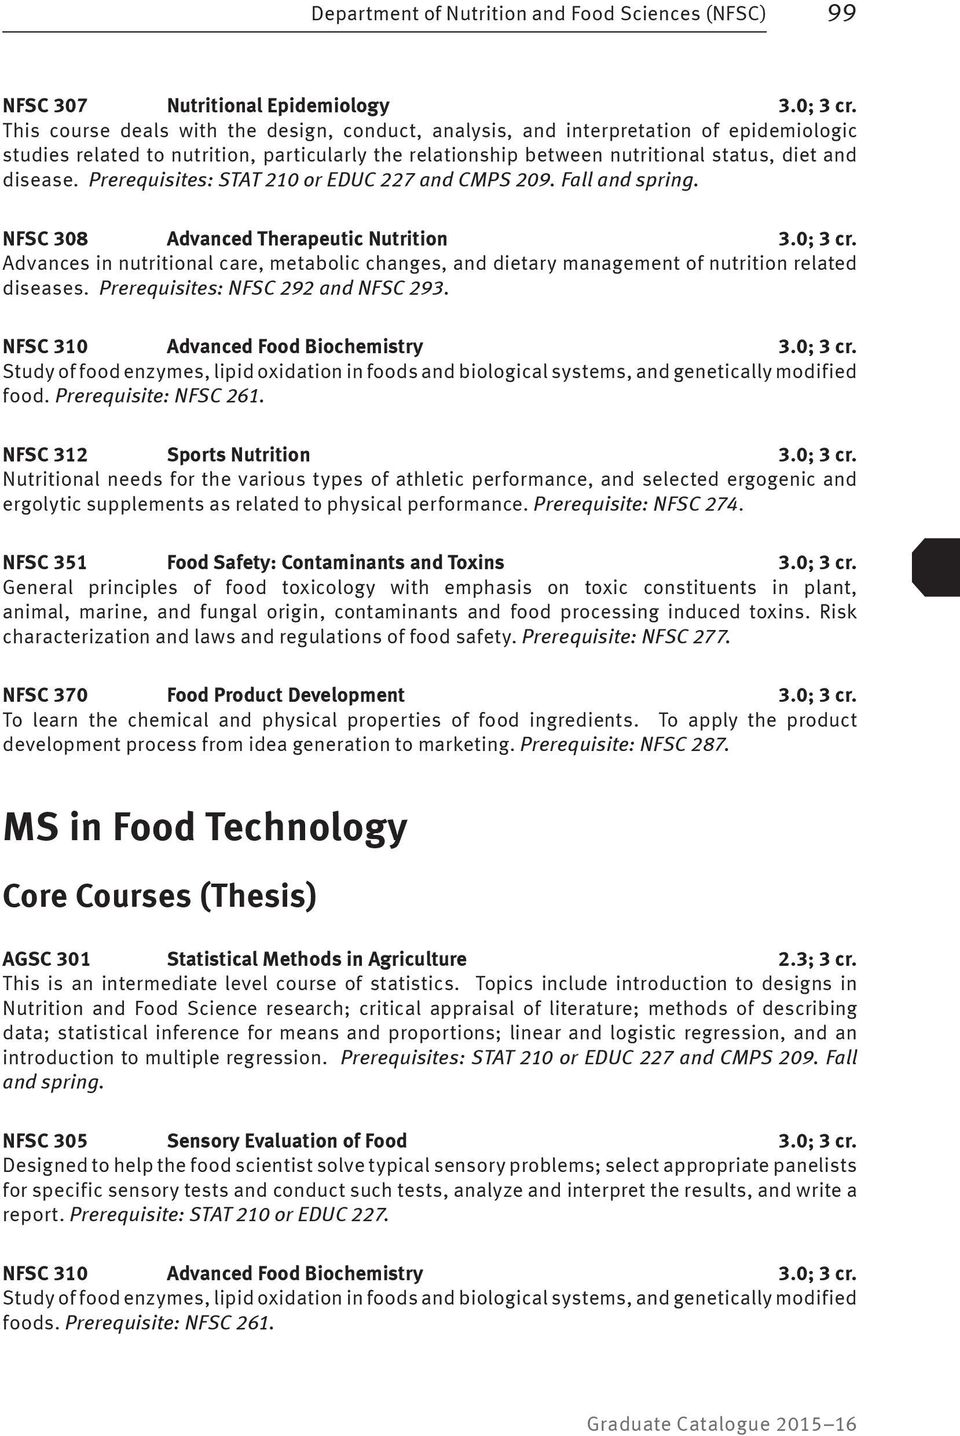 nutrition related thesis topics